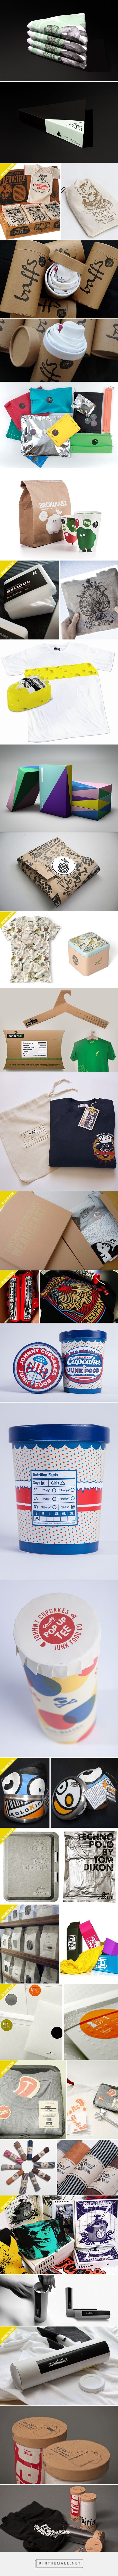 25 Cool T-shirt Packaging Design Examples – Printsome Blog. If you want to customize a good-looking CD packaging, visit www.unifiedmanufacturing.com